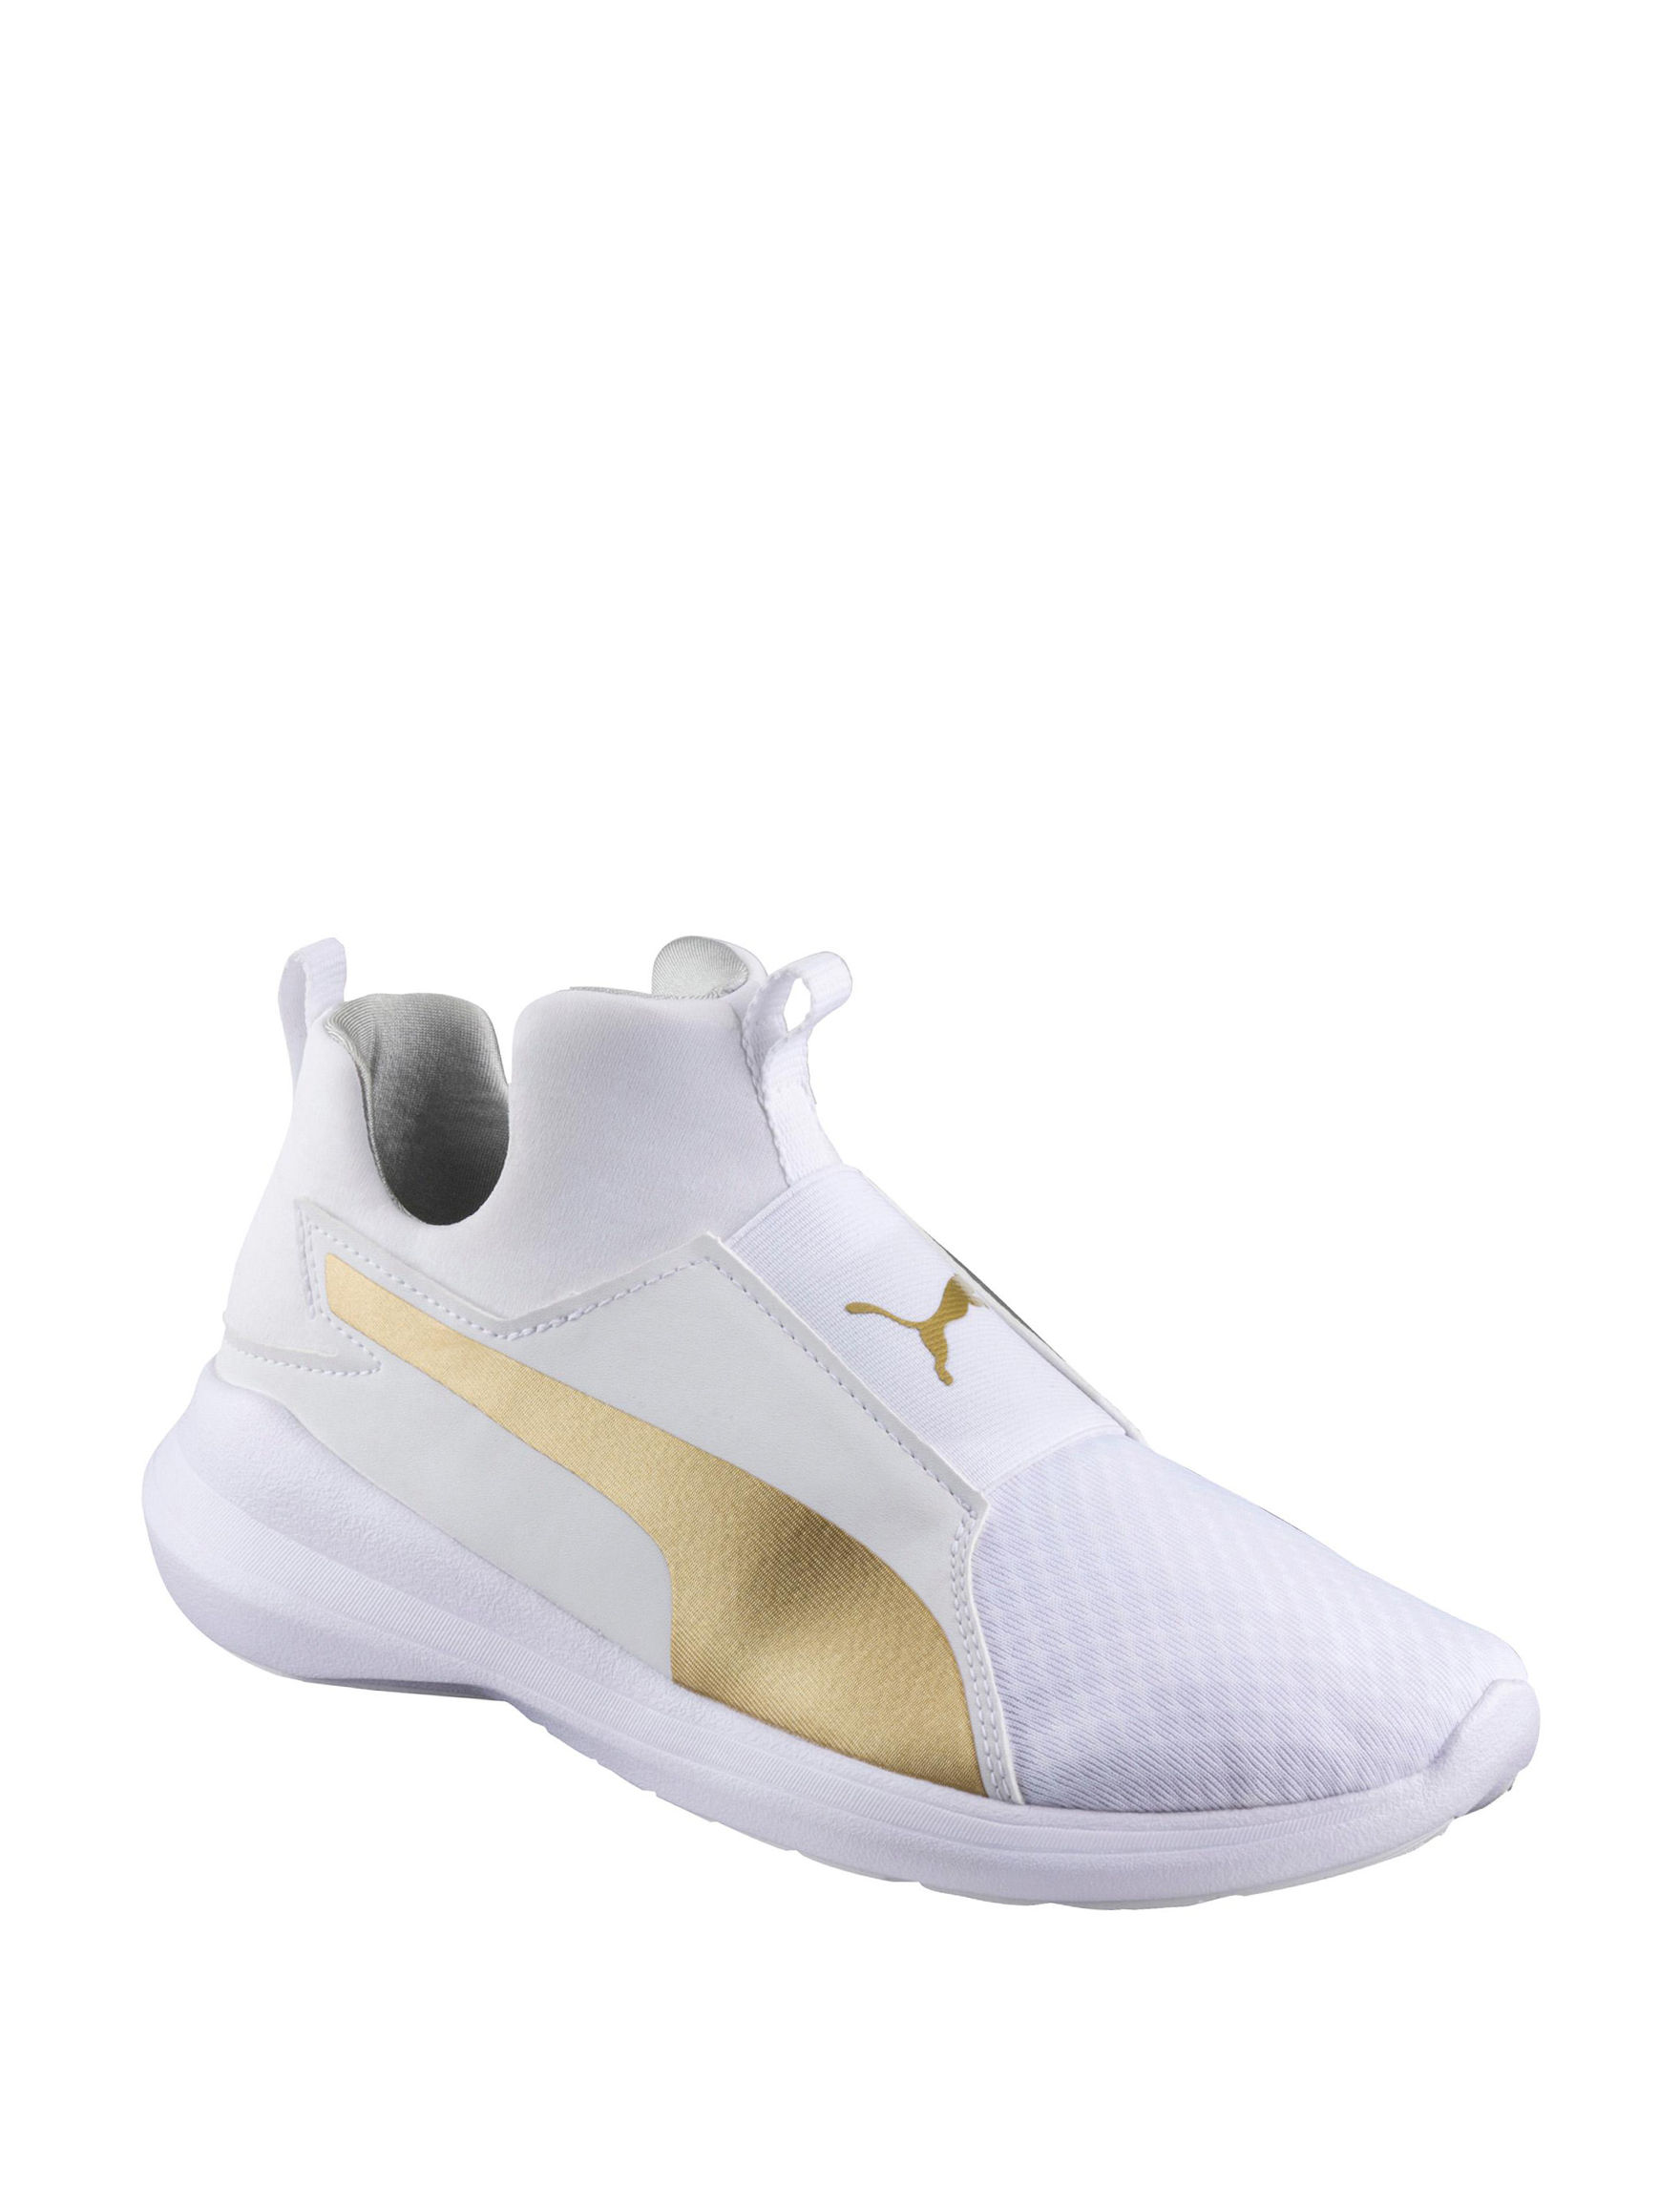 a3ccaec476e UPC 190275603645 product image for Puma Rebel Slip-on Athletic Shoes -  CLOSEOUT!